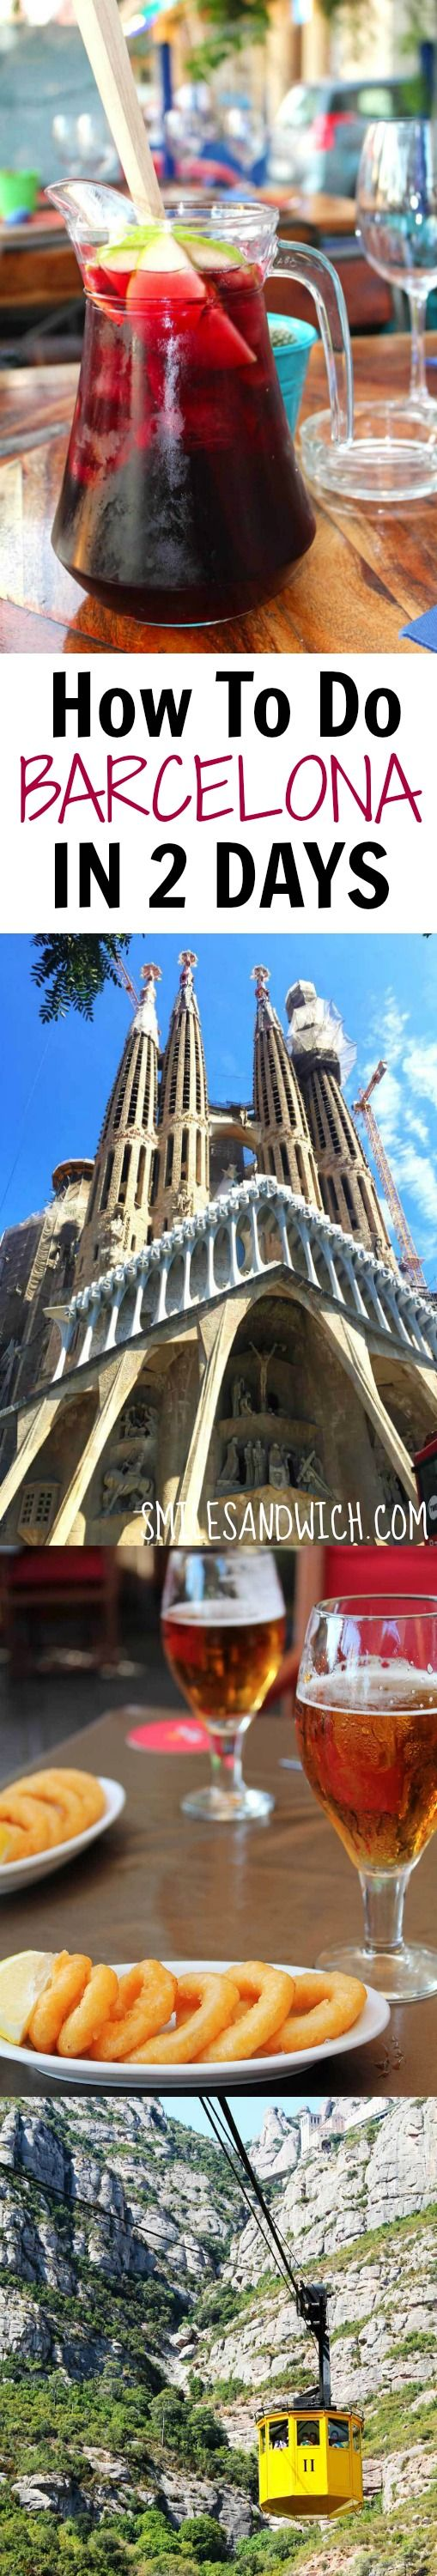 How to do Barcelona in 2 days - a two day Barcelona itinerary for a quick trip! Spain travel guide | Spain trip | best restaurants Barcelona | things to do in Barcelona | tourist in Barcelona | tourist attraction Barcelona